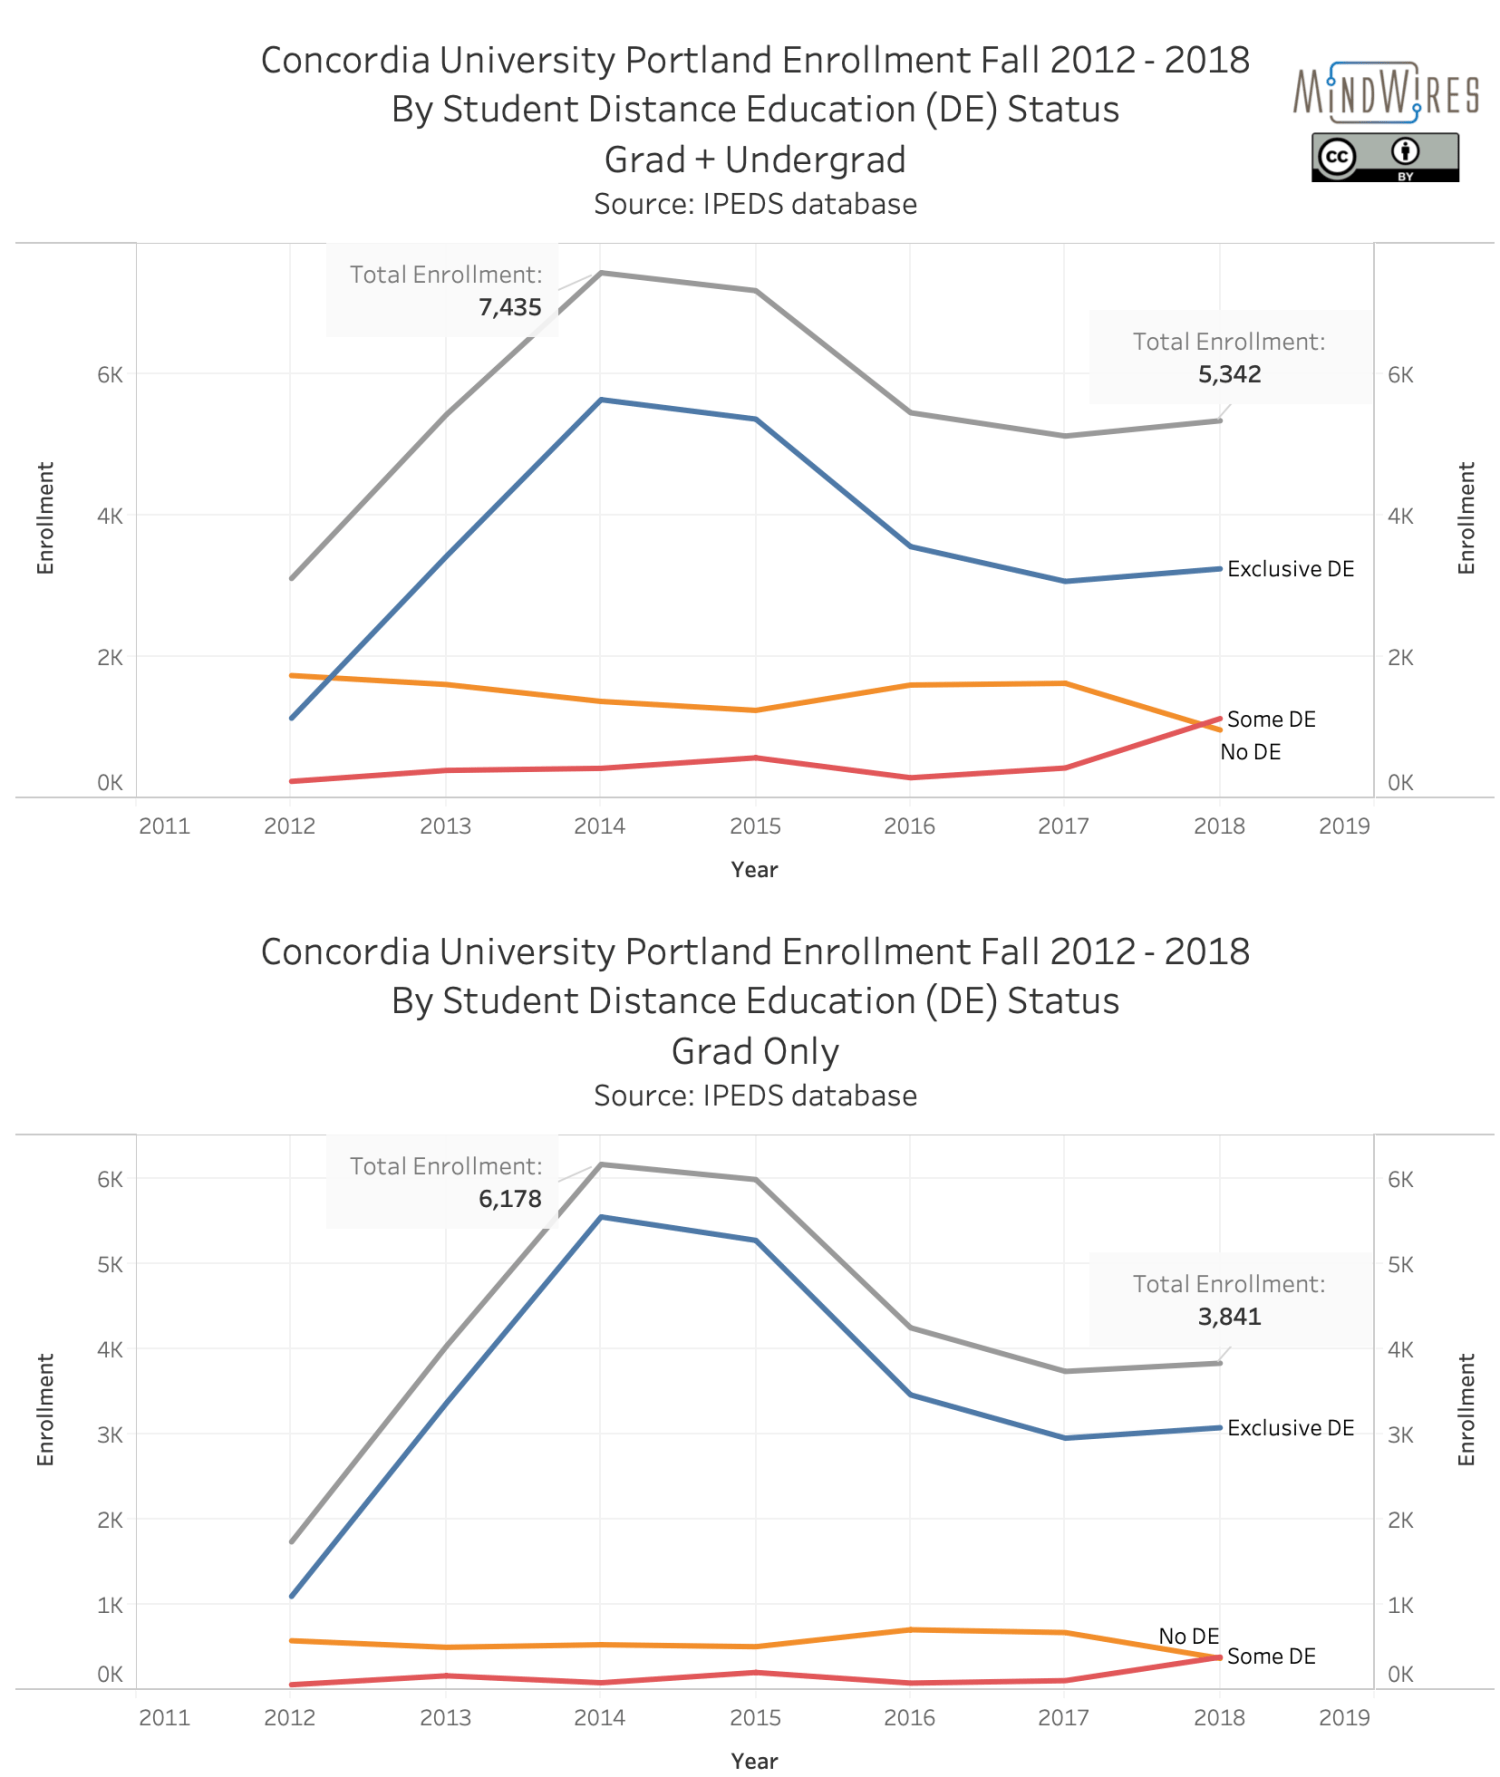 Concordia University Portland Enrollment by distance education type, 2012 - 2018, for undergrad + grad and for grad only